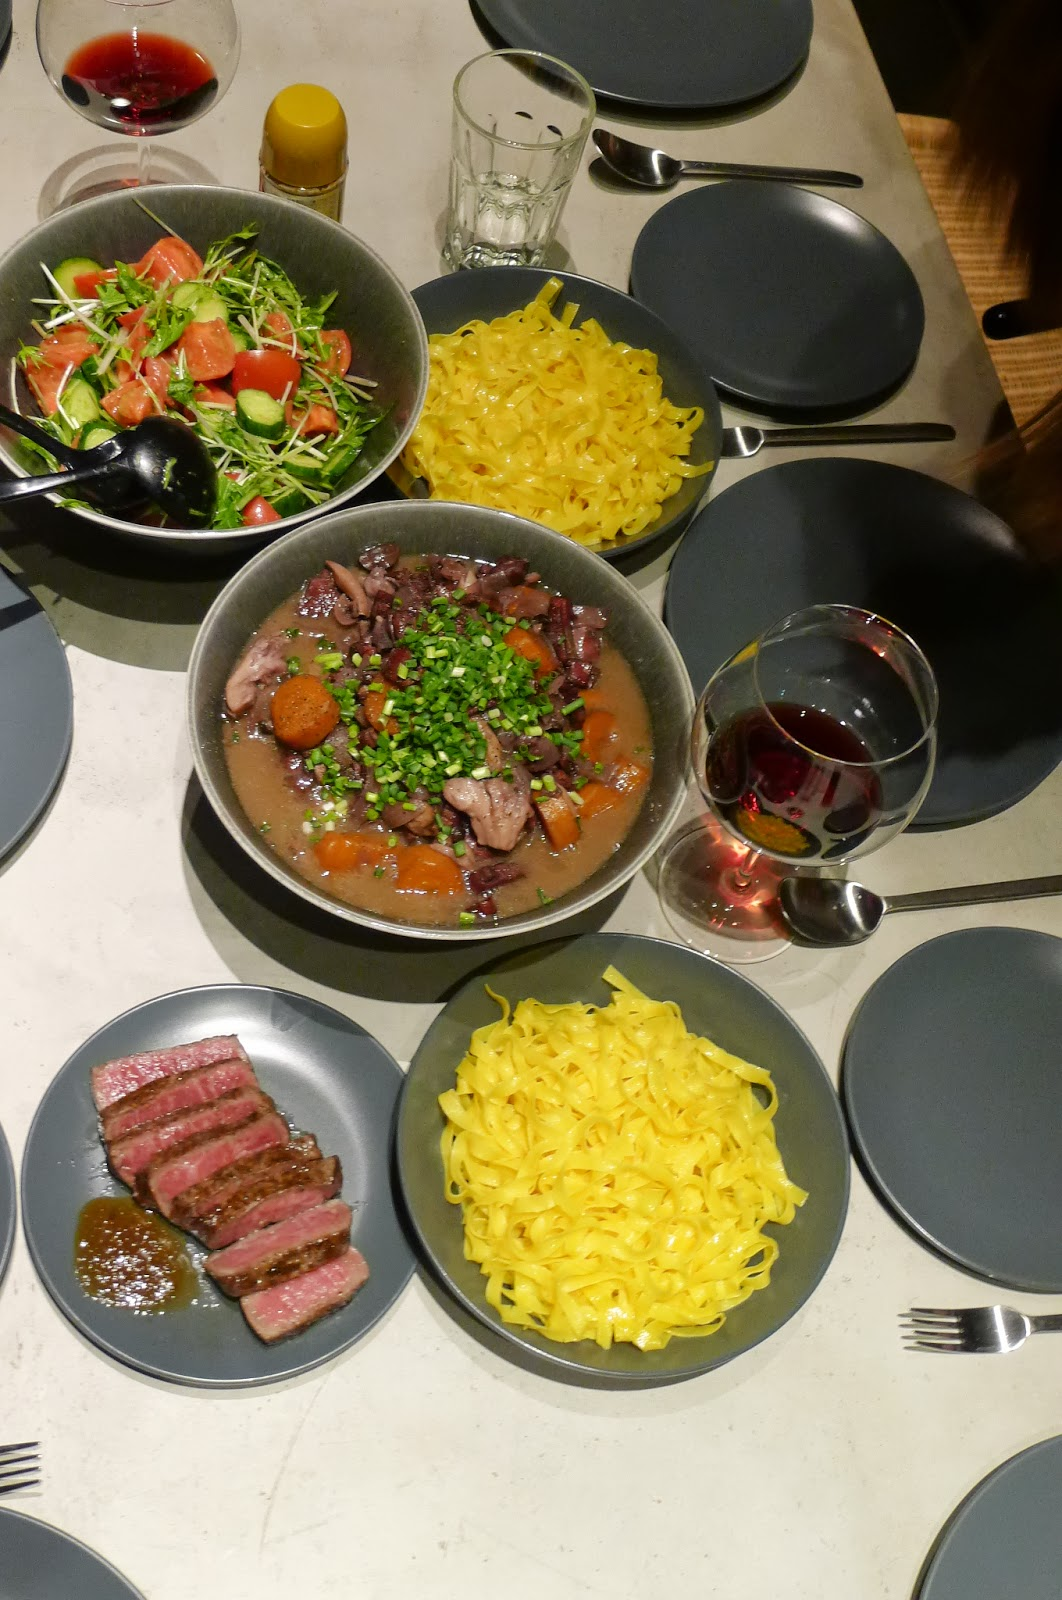 Beef, beef, beef - Beef bourguignon, Japanese steak, with pasta, and homemade salad.